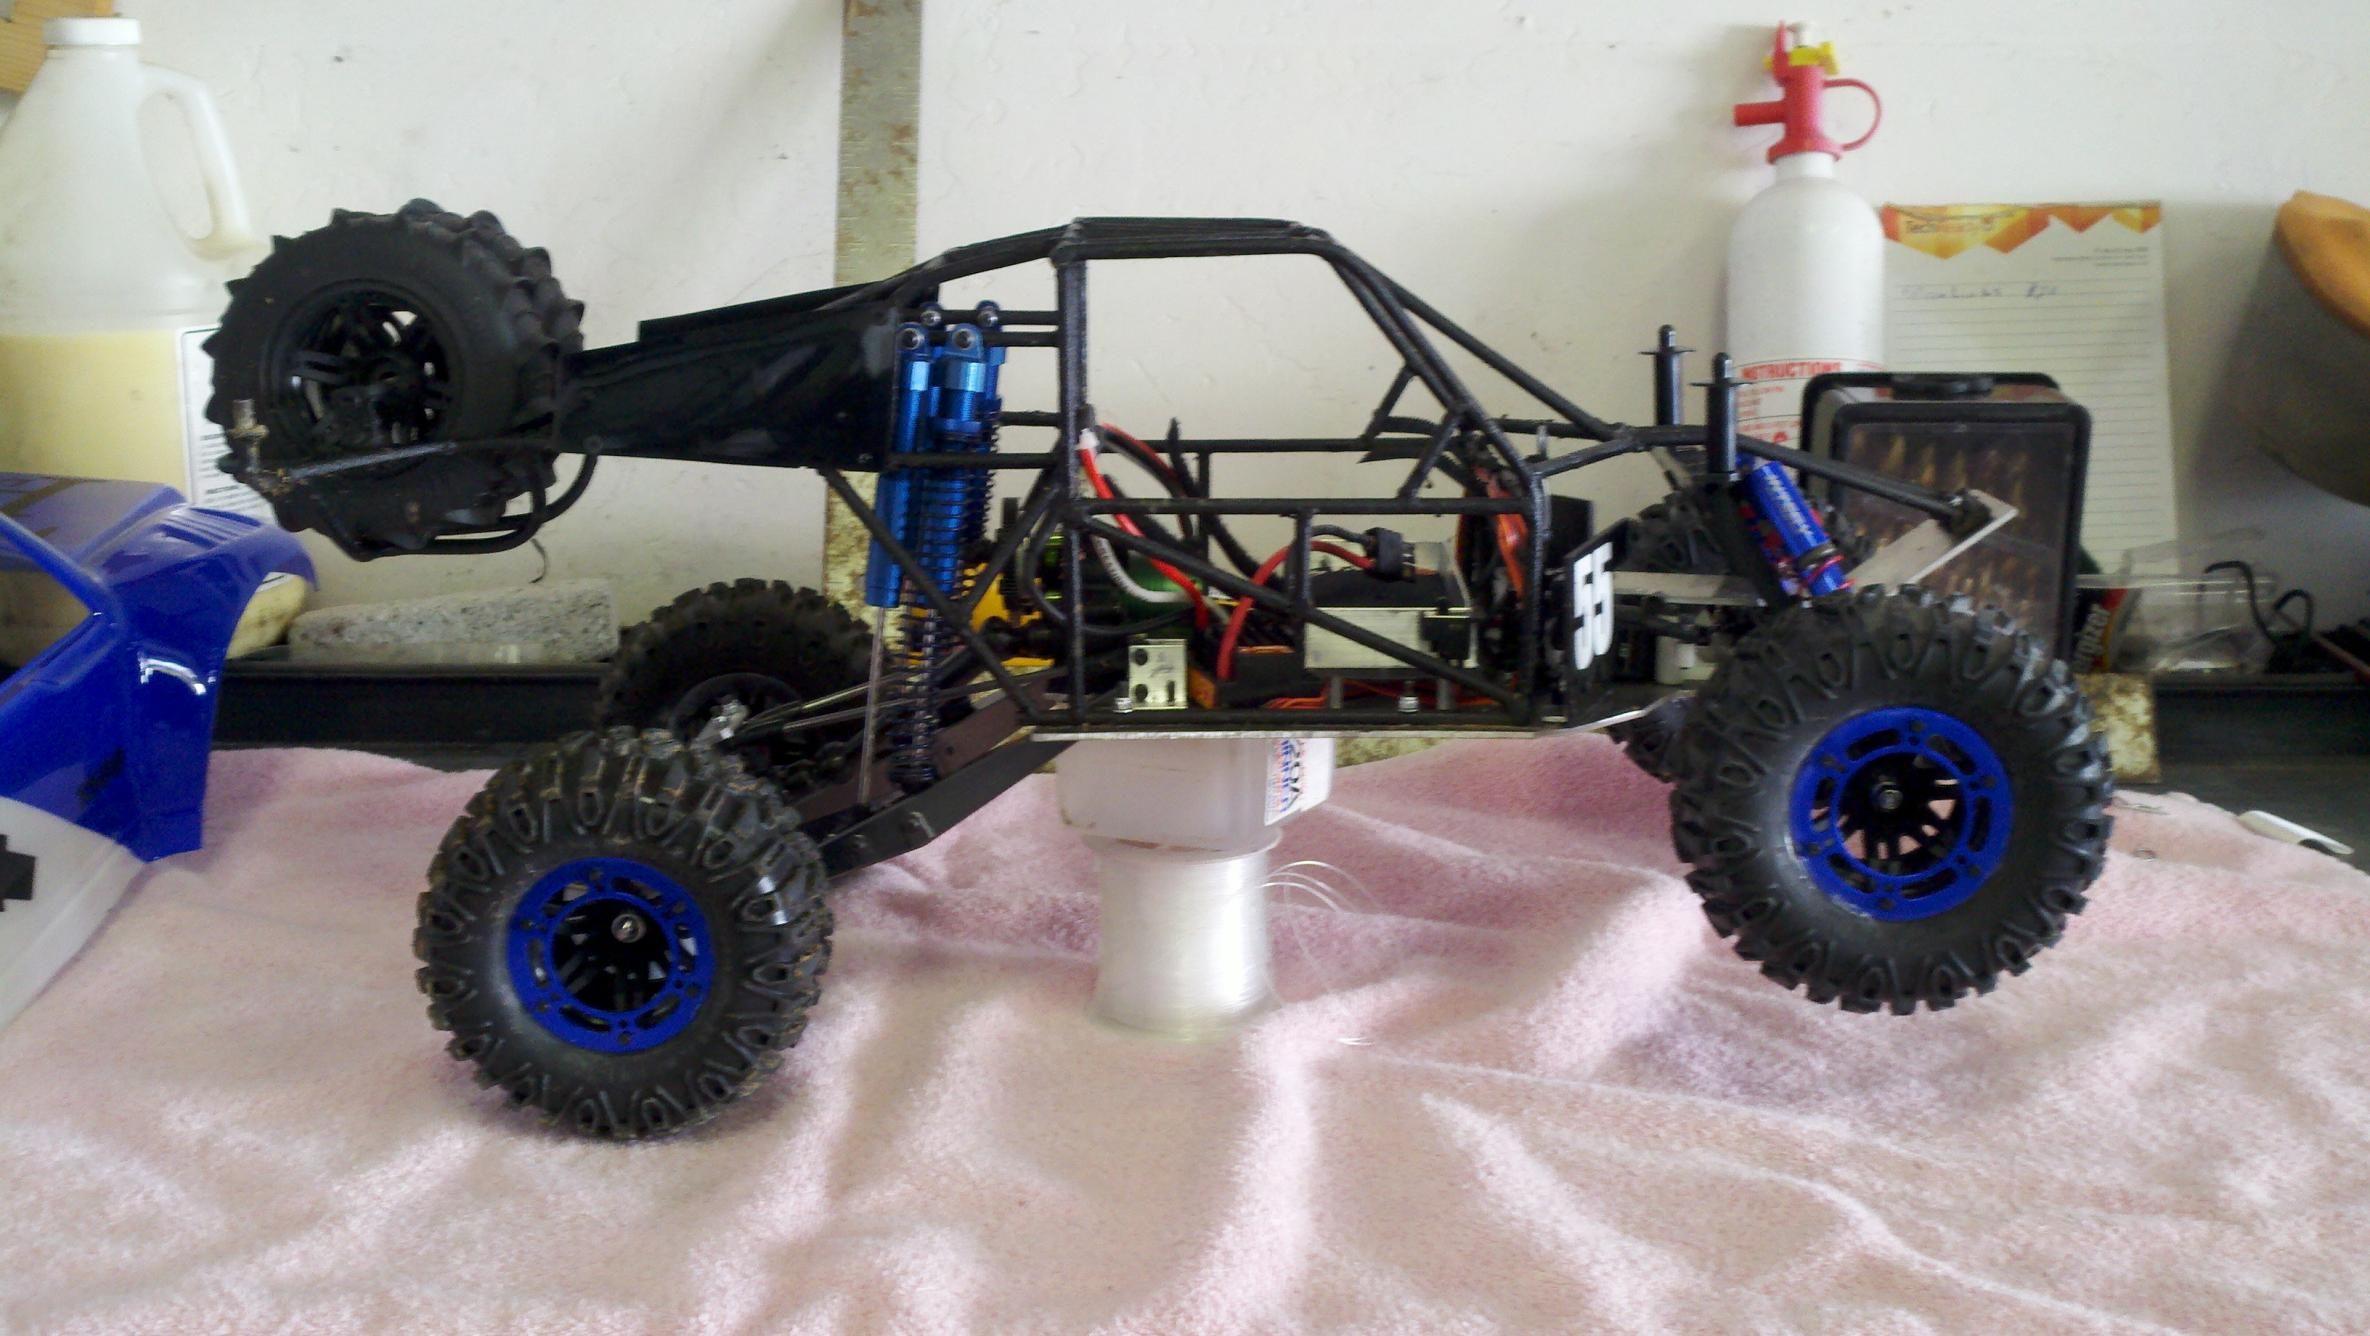 rc nitro trophy truck with 485513 Custom 1 8 Trophy Truck Built on Best Rc Cars The Best Battery Powered And Nitro Buggies From 120 further Durite Silicone Echappement also Rc Cars For Sale Best Nitro Gas Powered Petrol Electric Fast Drift Tamiya Traxxas Radio Controlled Cars in addition rc Monster Trucks   1 5 Scale Rc Trucks as well 51c808 10 Desertsct Aagreen 24g.